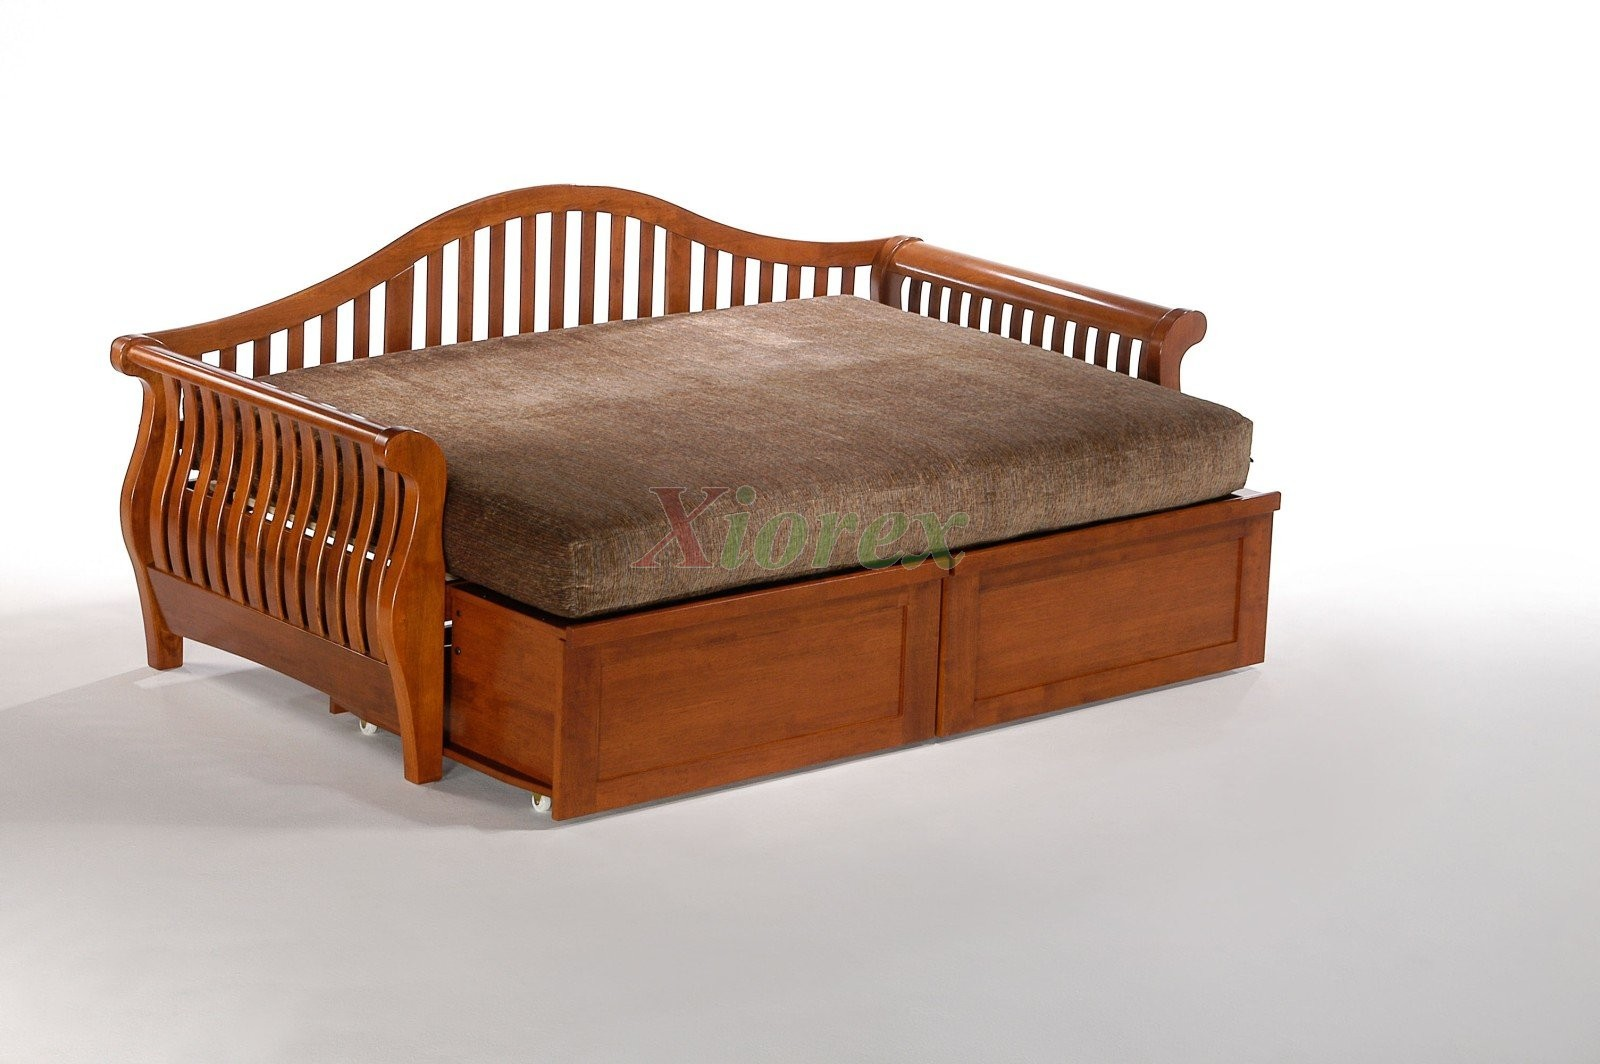 Full Size Daybed with Trundle | Daybed with Trundle Full Size | Trundle Beds for Adults